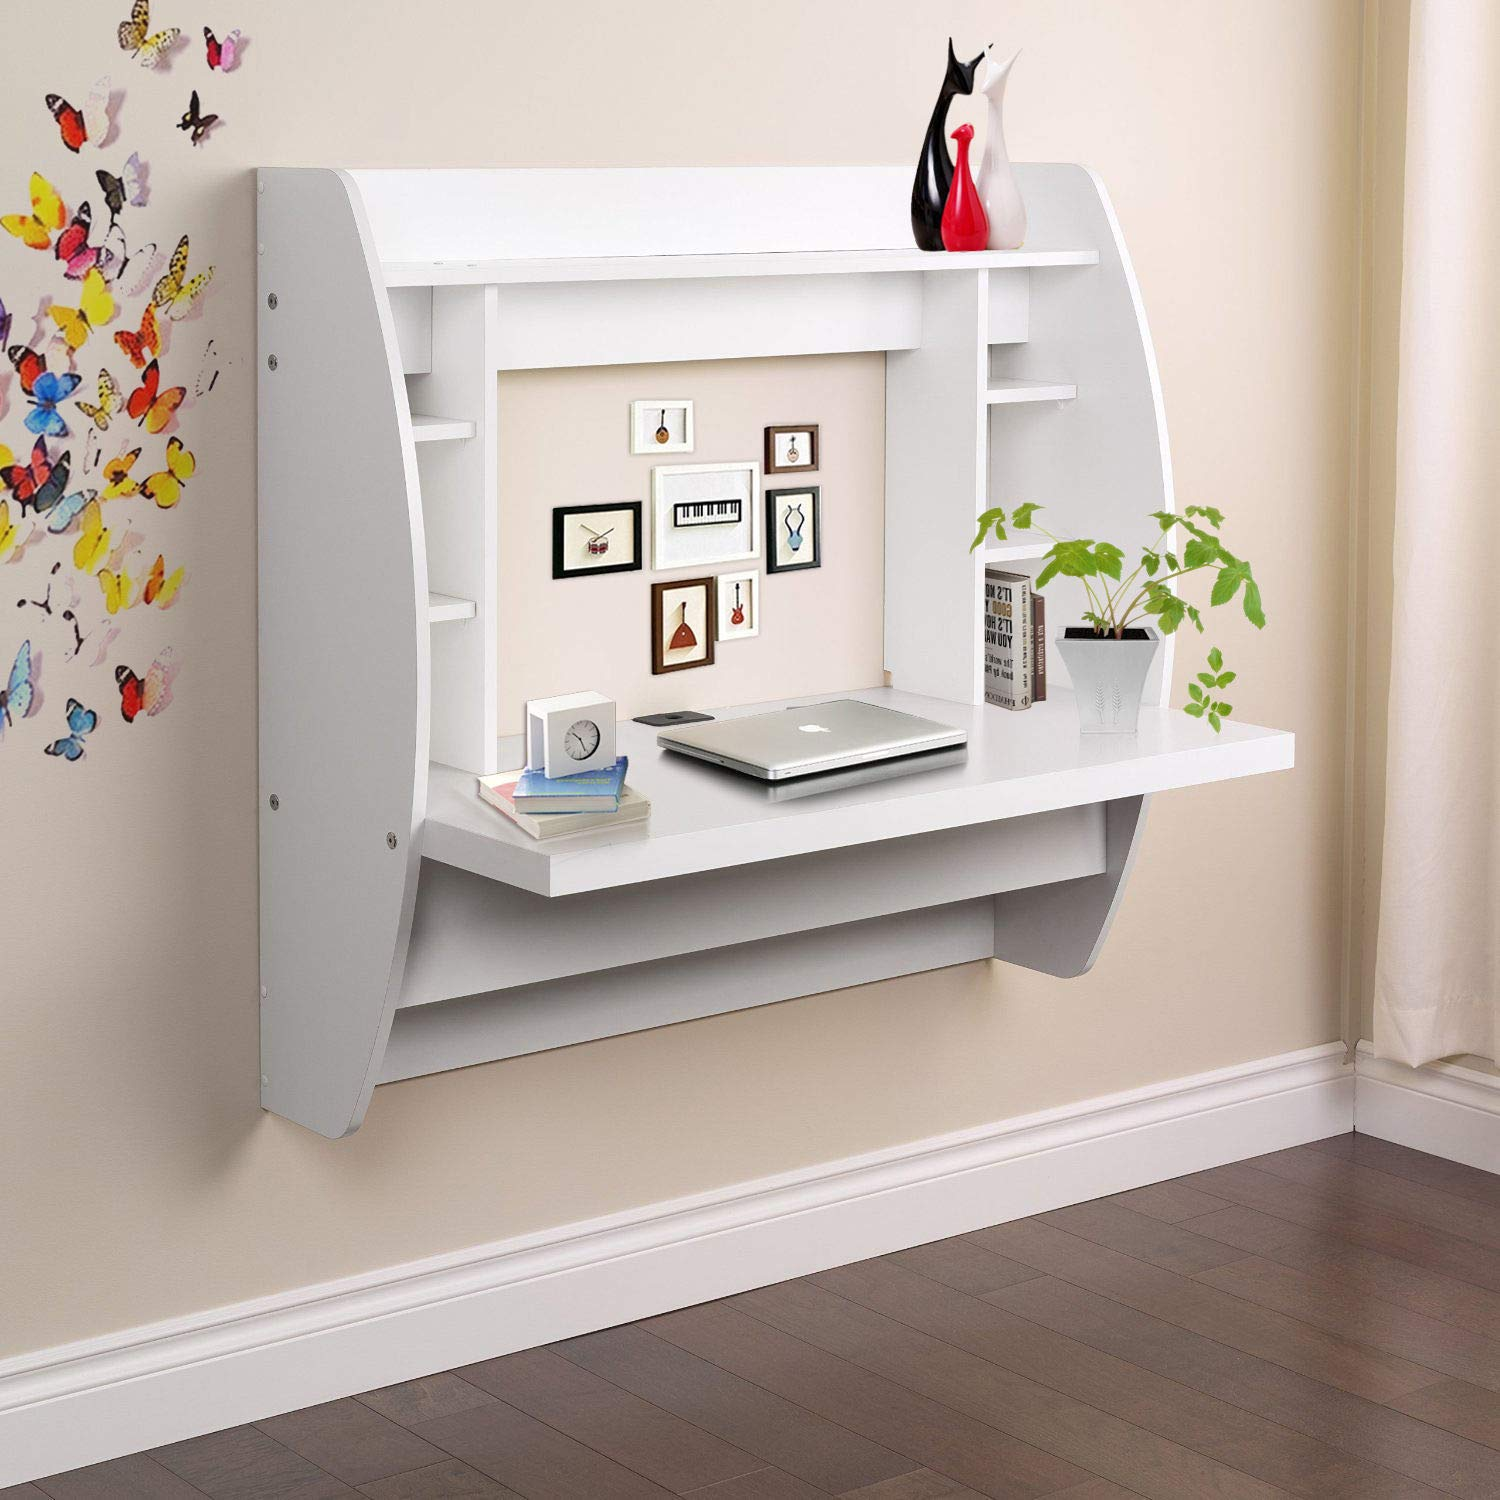 Prountet Home Office Computer Desk Table Floating Wall Mount Desk W/Storage Shelves White by Prountet (Image #1)